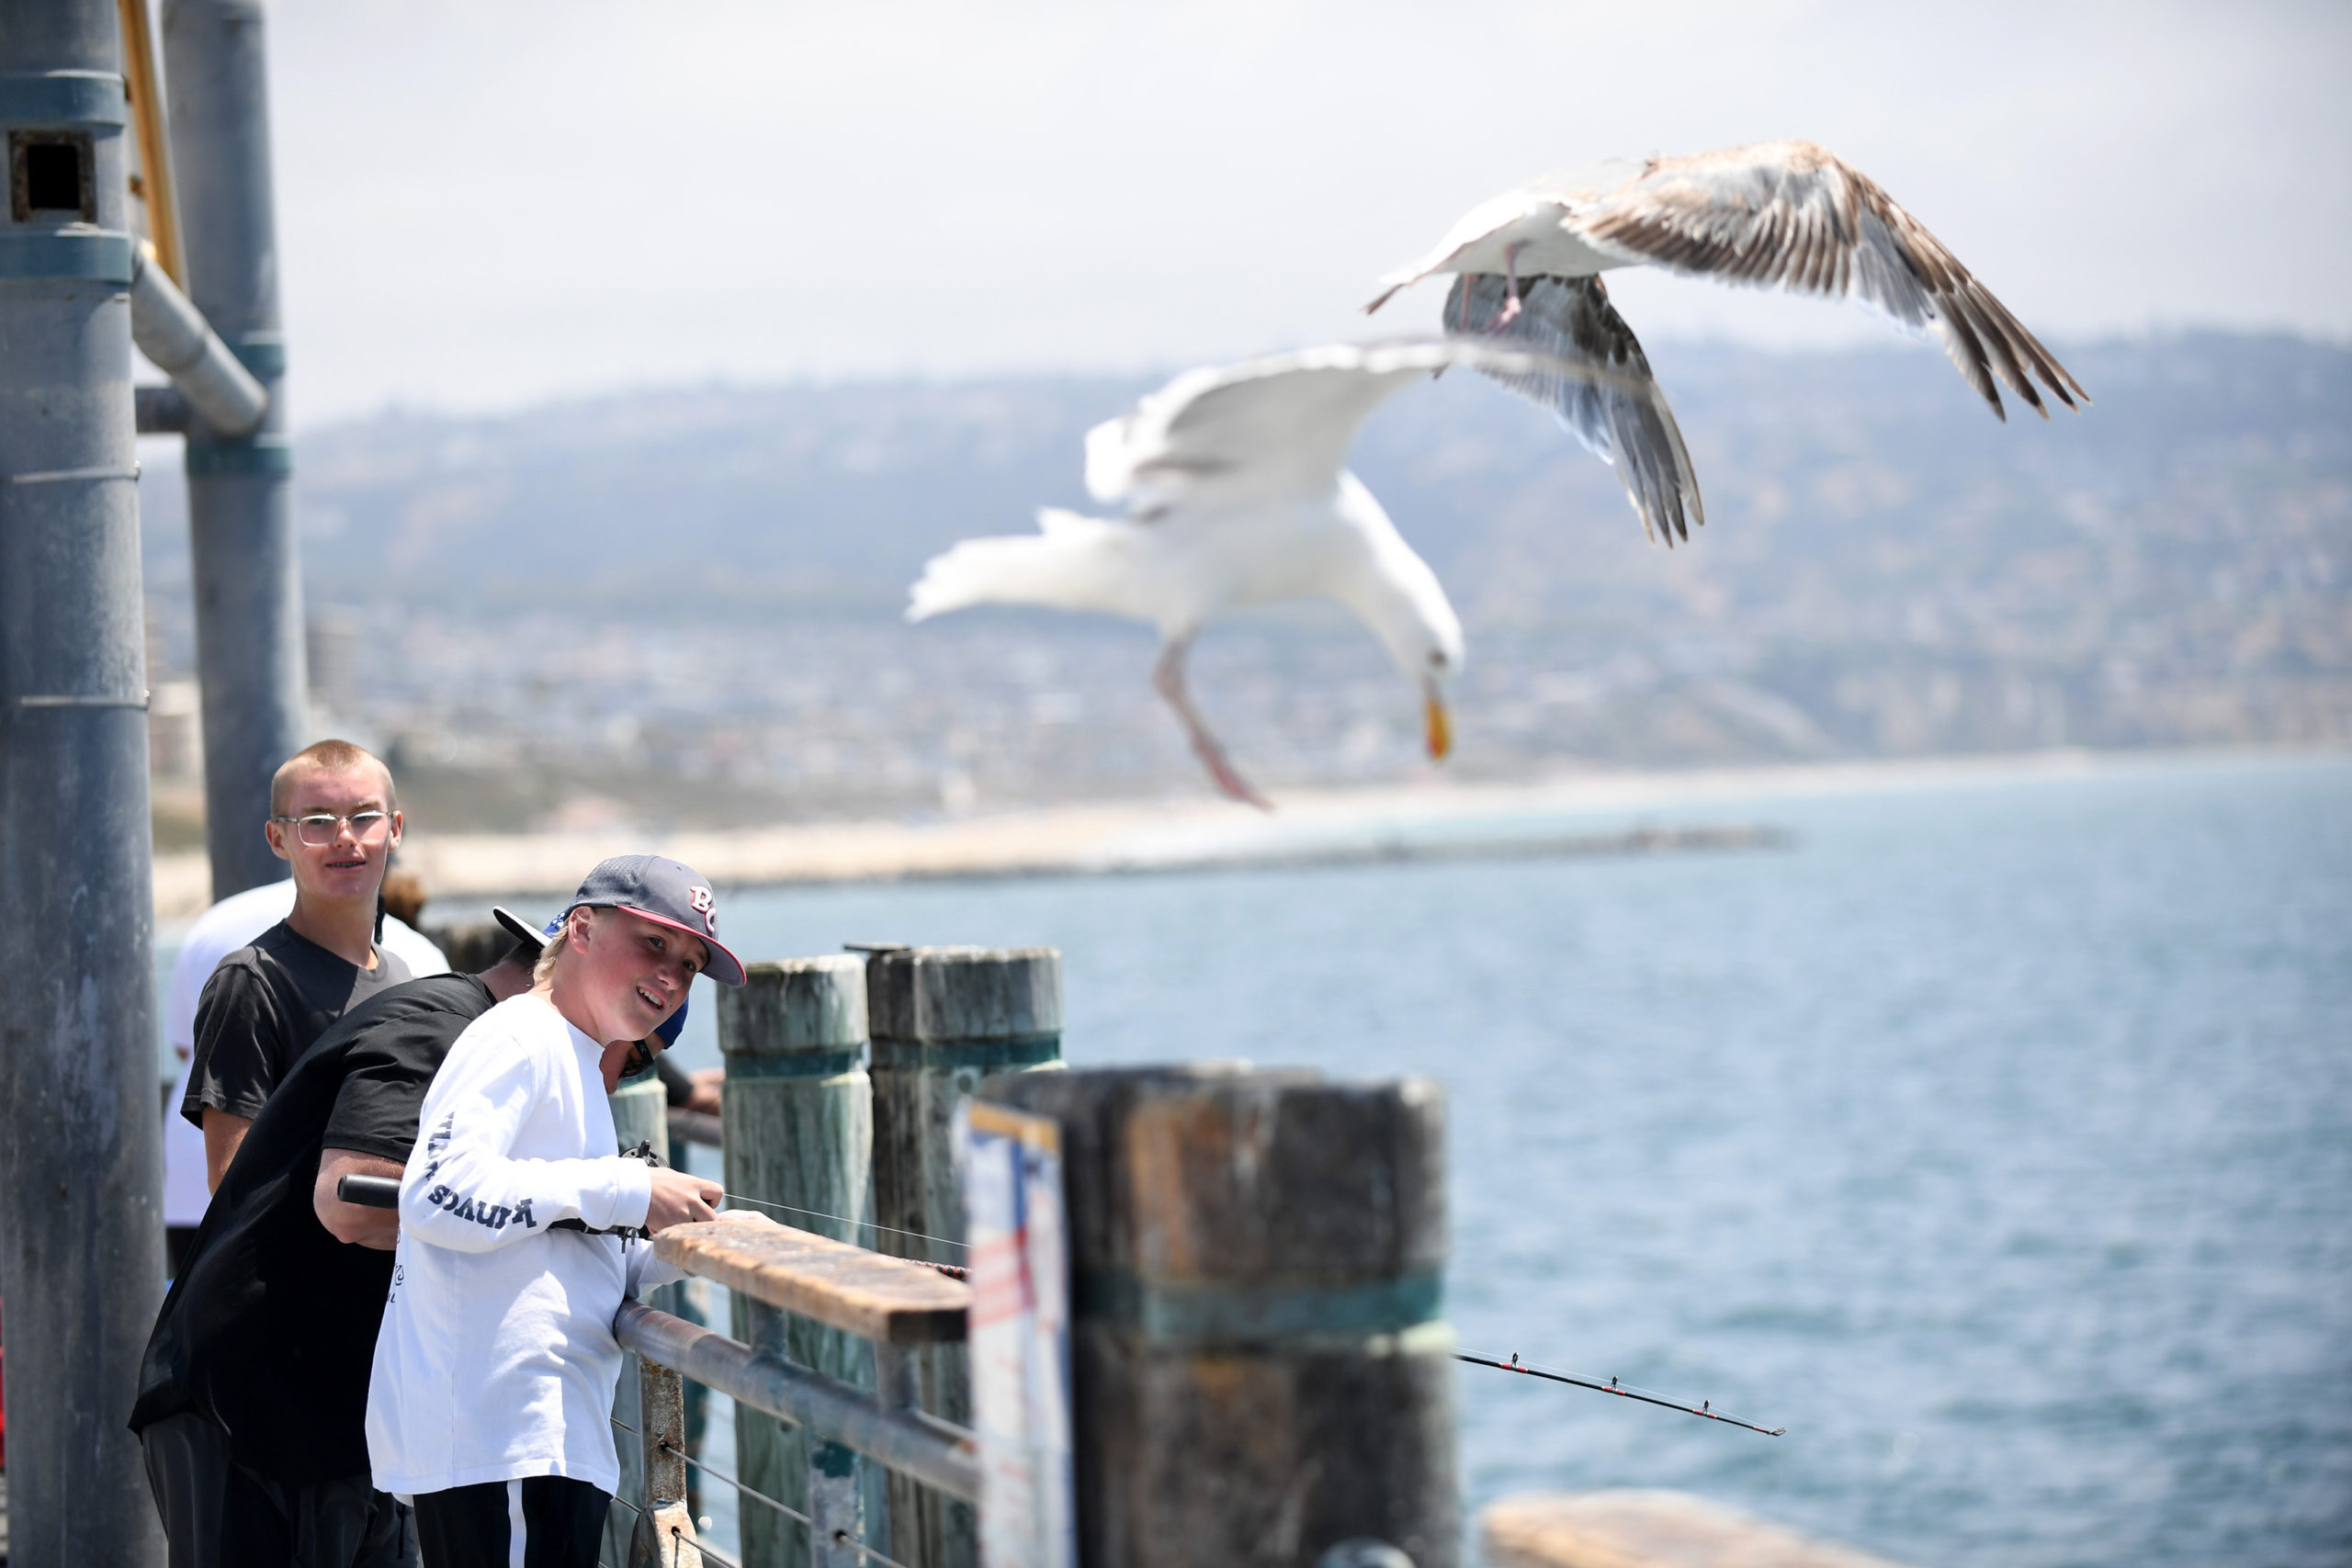 LA County beaches will close for July 4 weekend due to coronavirus concerns